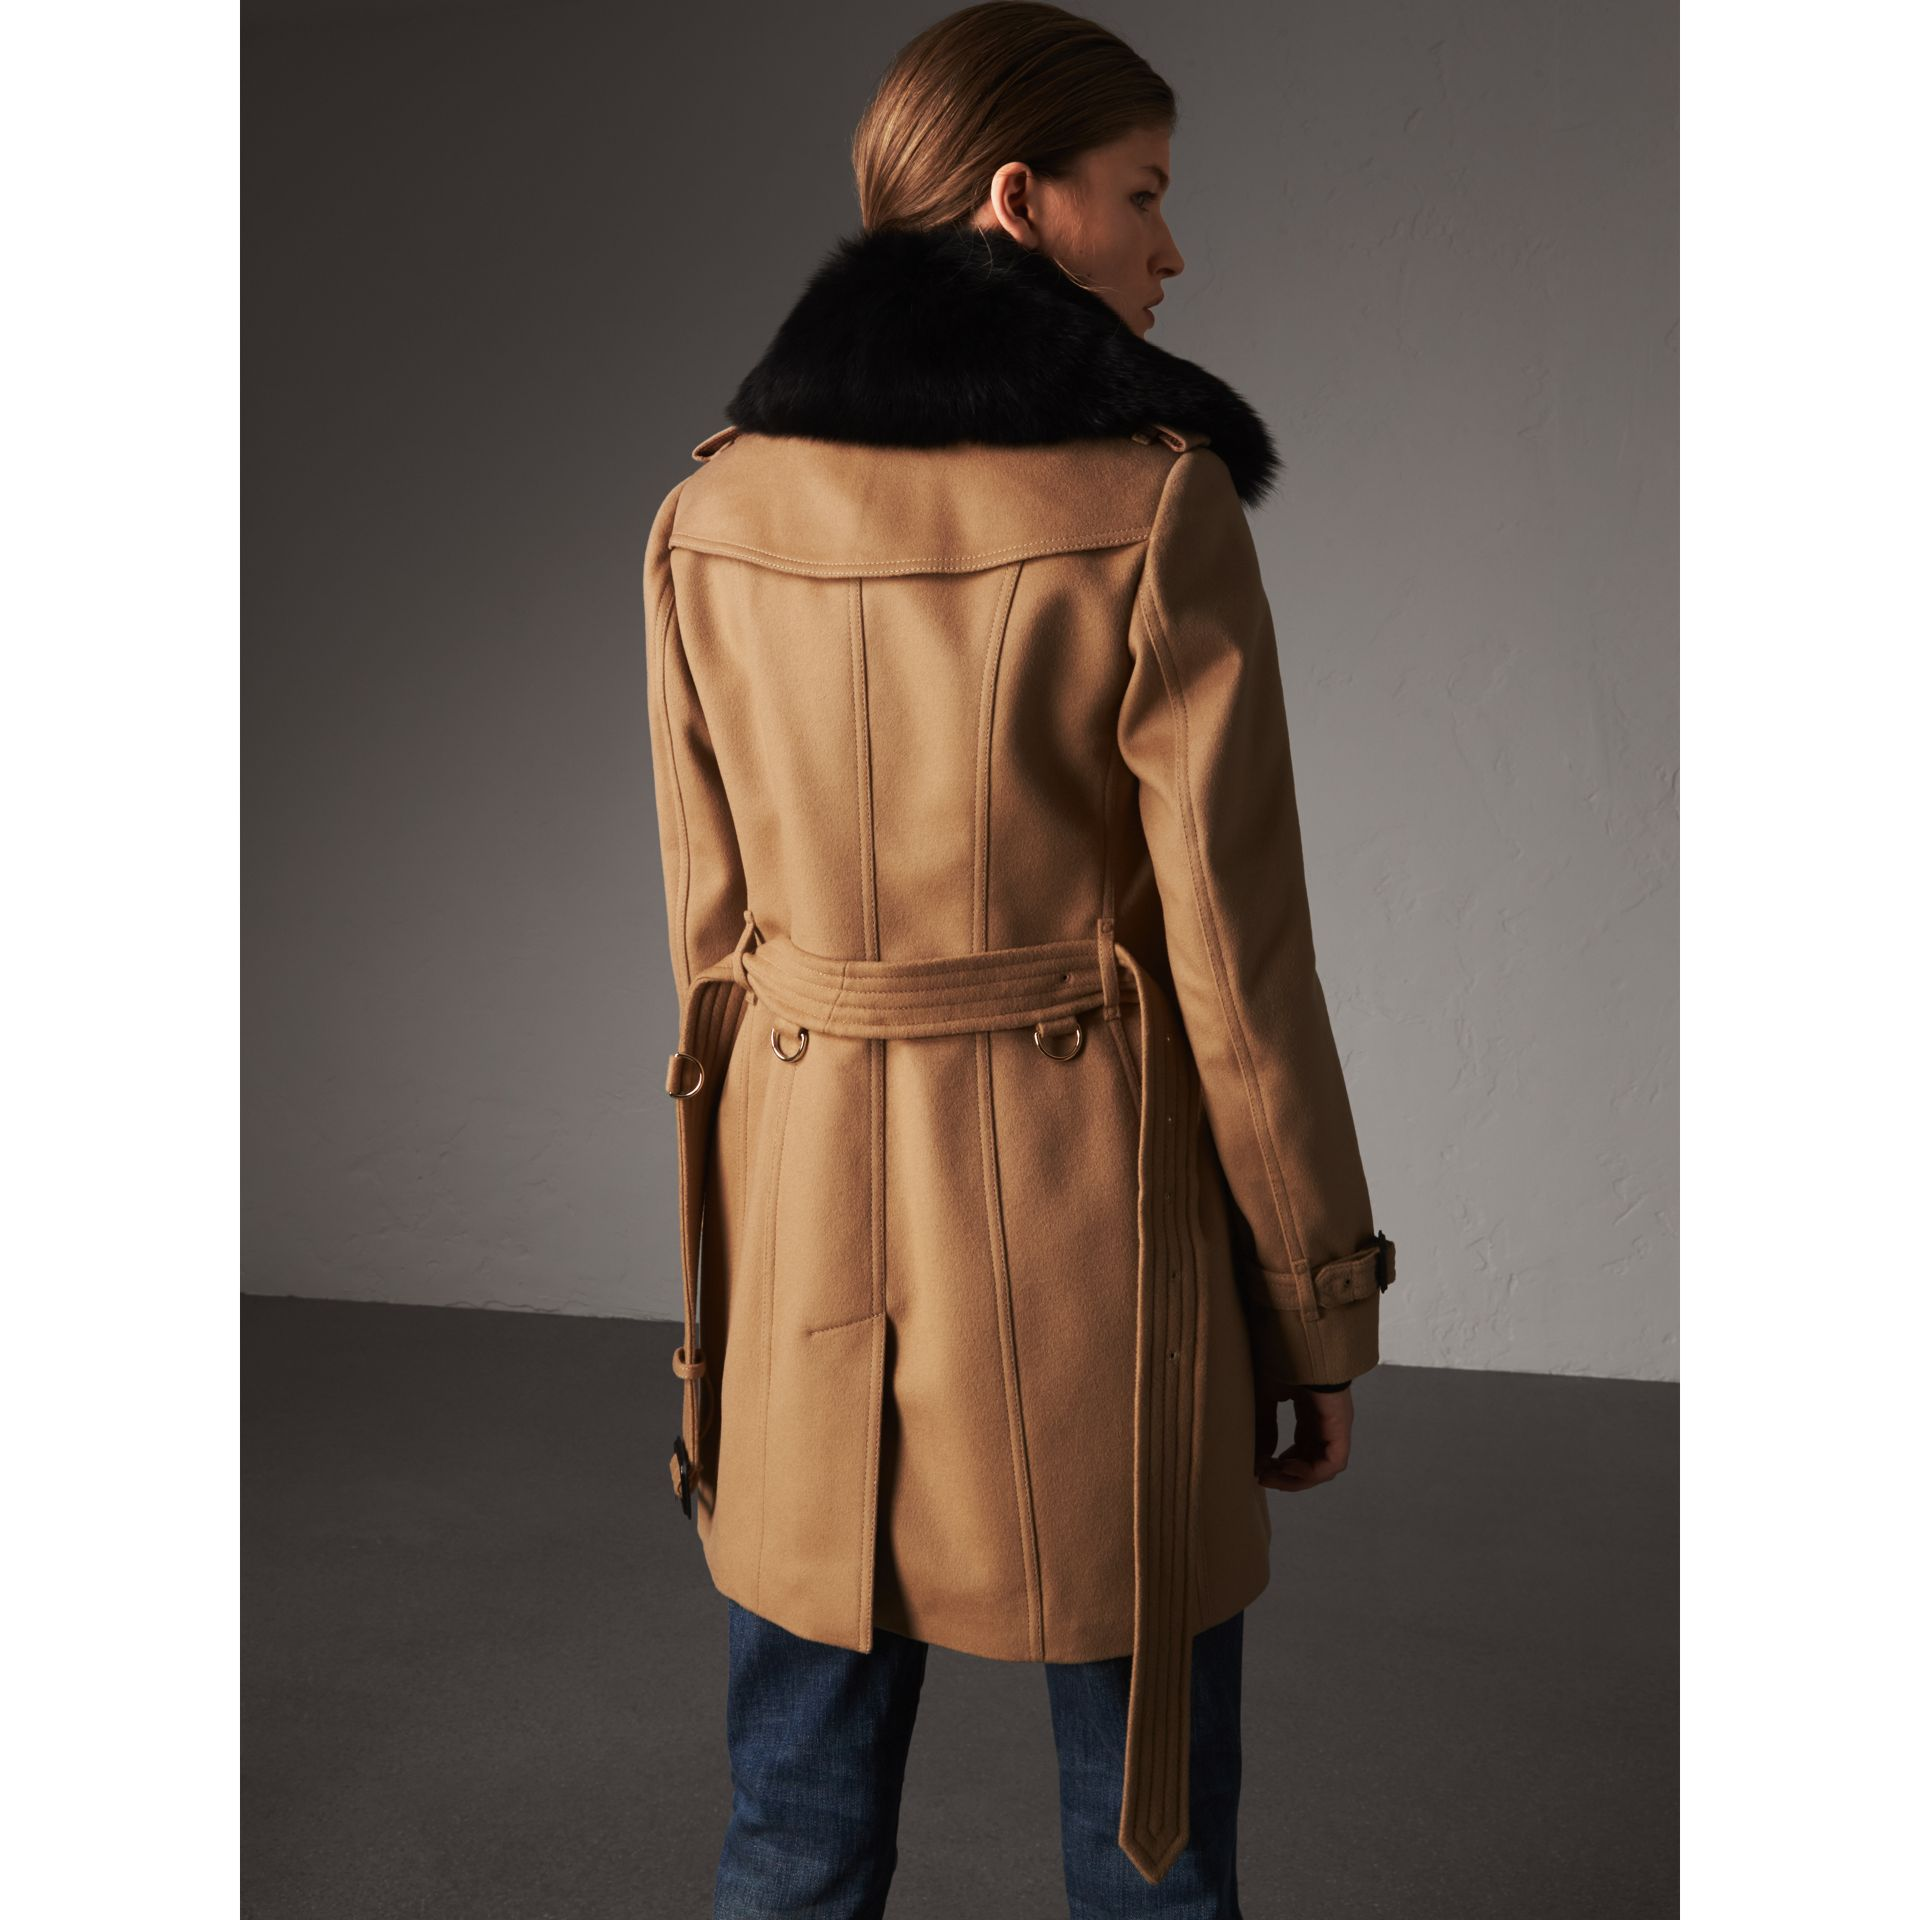 Wool Cashmere Trench Coat with Fur Collar in Camel - Women | Burberry - gallery image 2